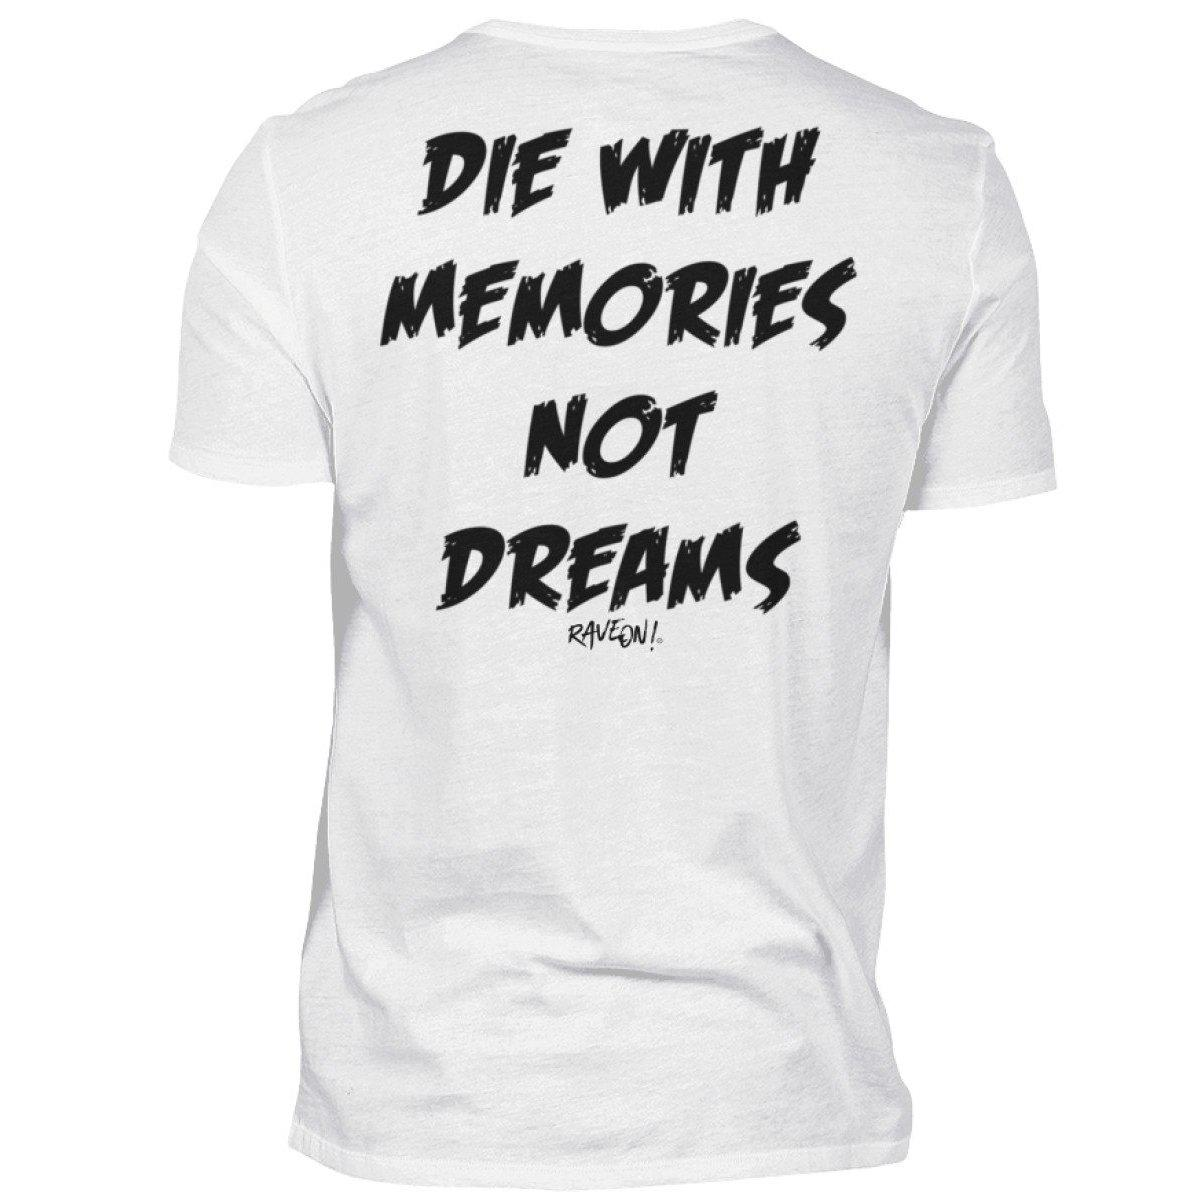 DIE WITH MEMORIES NOT DreamS - Rave On!® - Premiumshirt Herren Premium Shirt White / S - Rave On!® der Club & Techno Szene Shop für Coole Junge Mode Streetwear Style & Fashion Outfits + Sexy Festival 420 Stuff